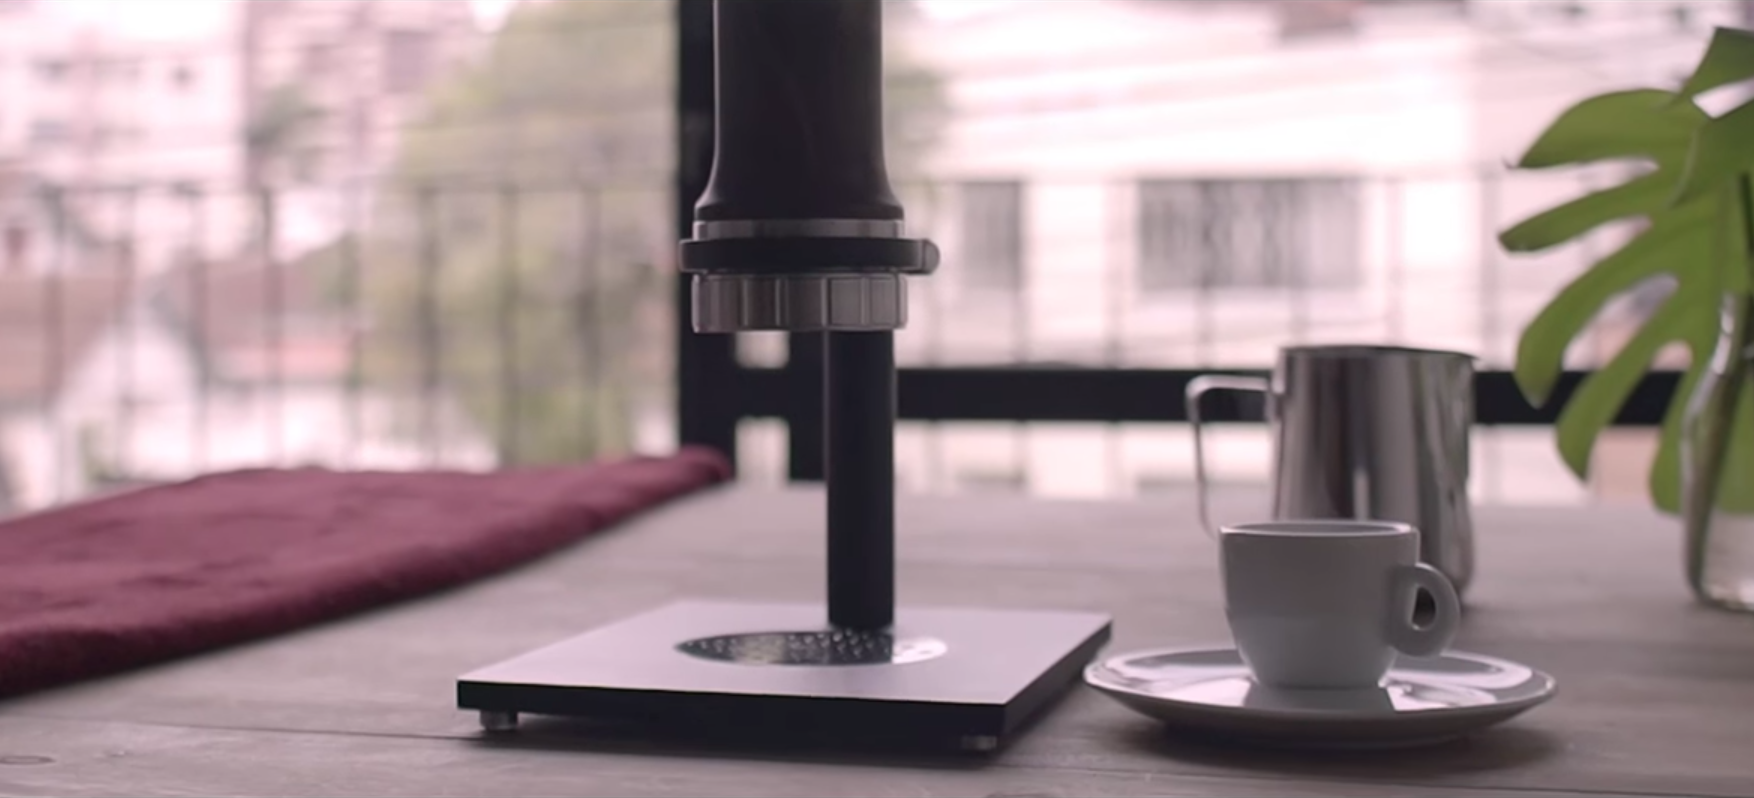 EC: This Portable Espresso Maker Is the Size of a Pepper Mill